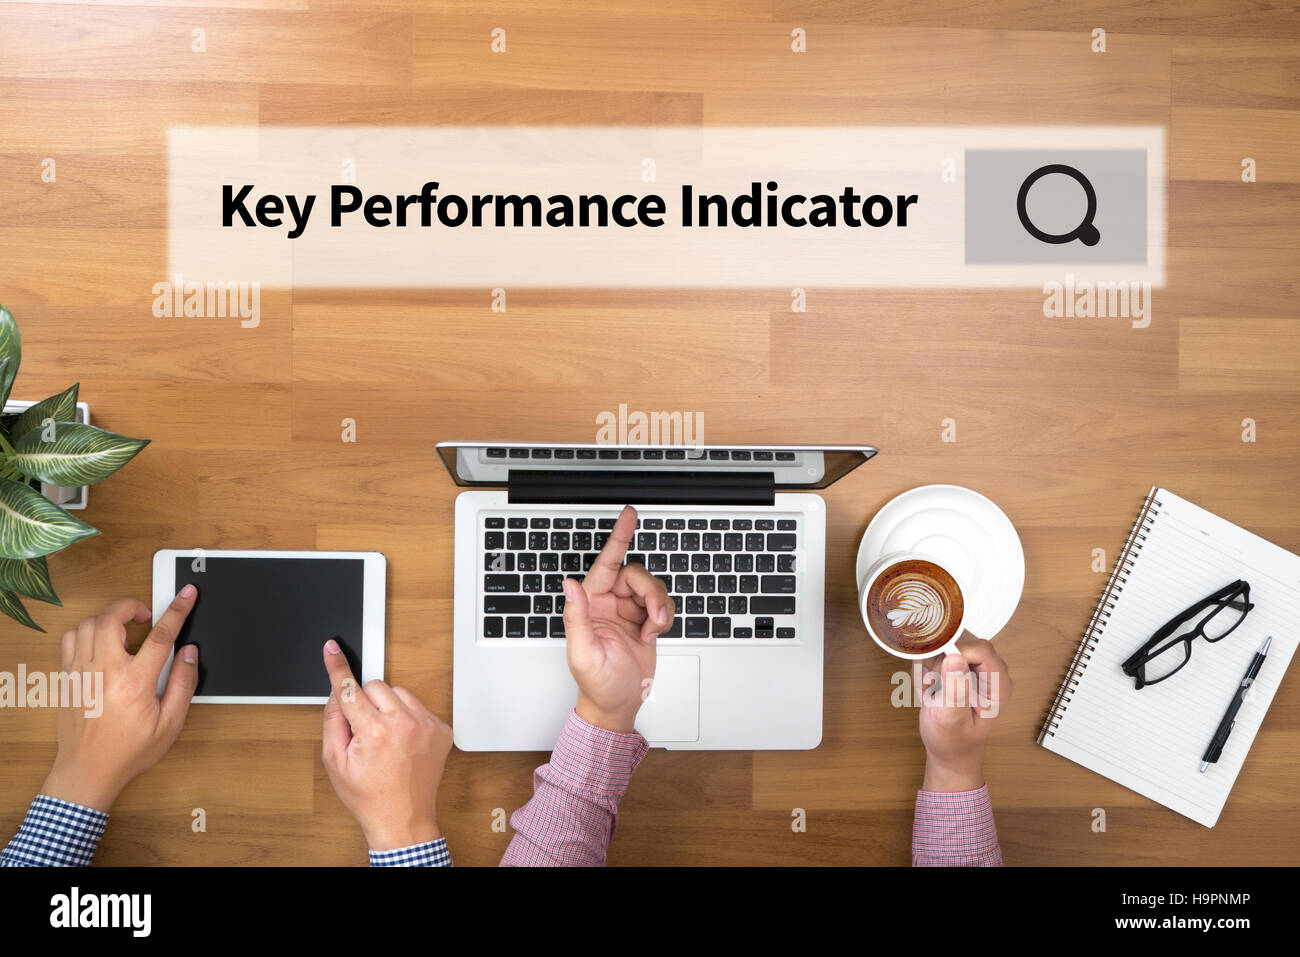 KPI acronym (Key Performance Indicator) - Stock Image